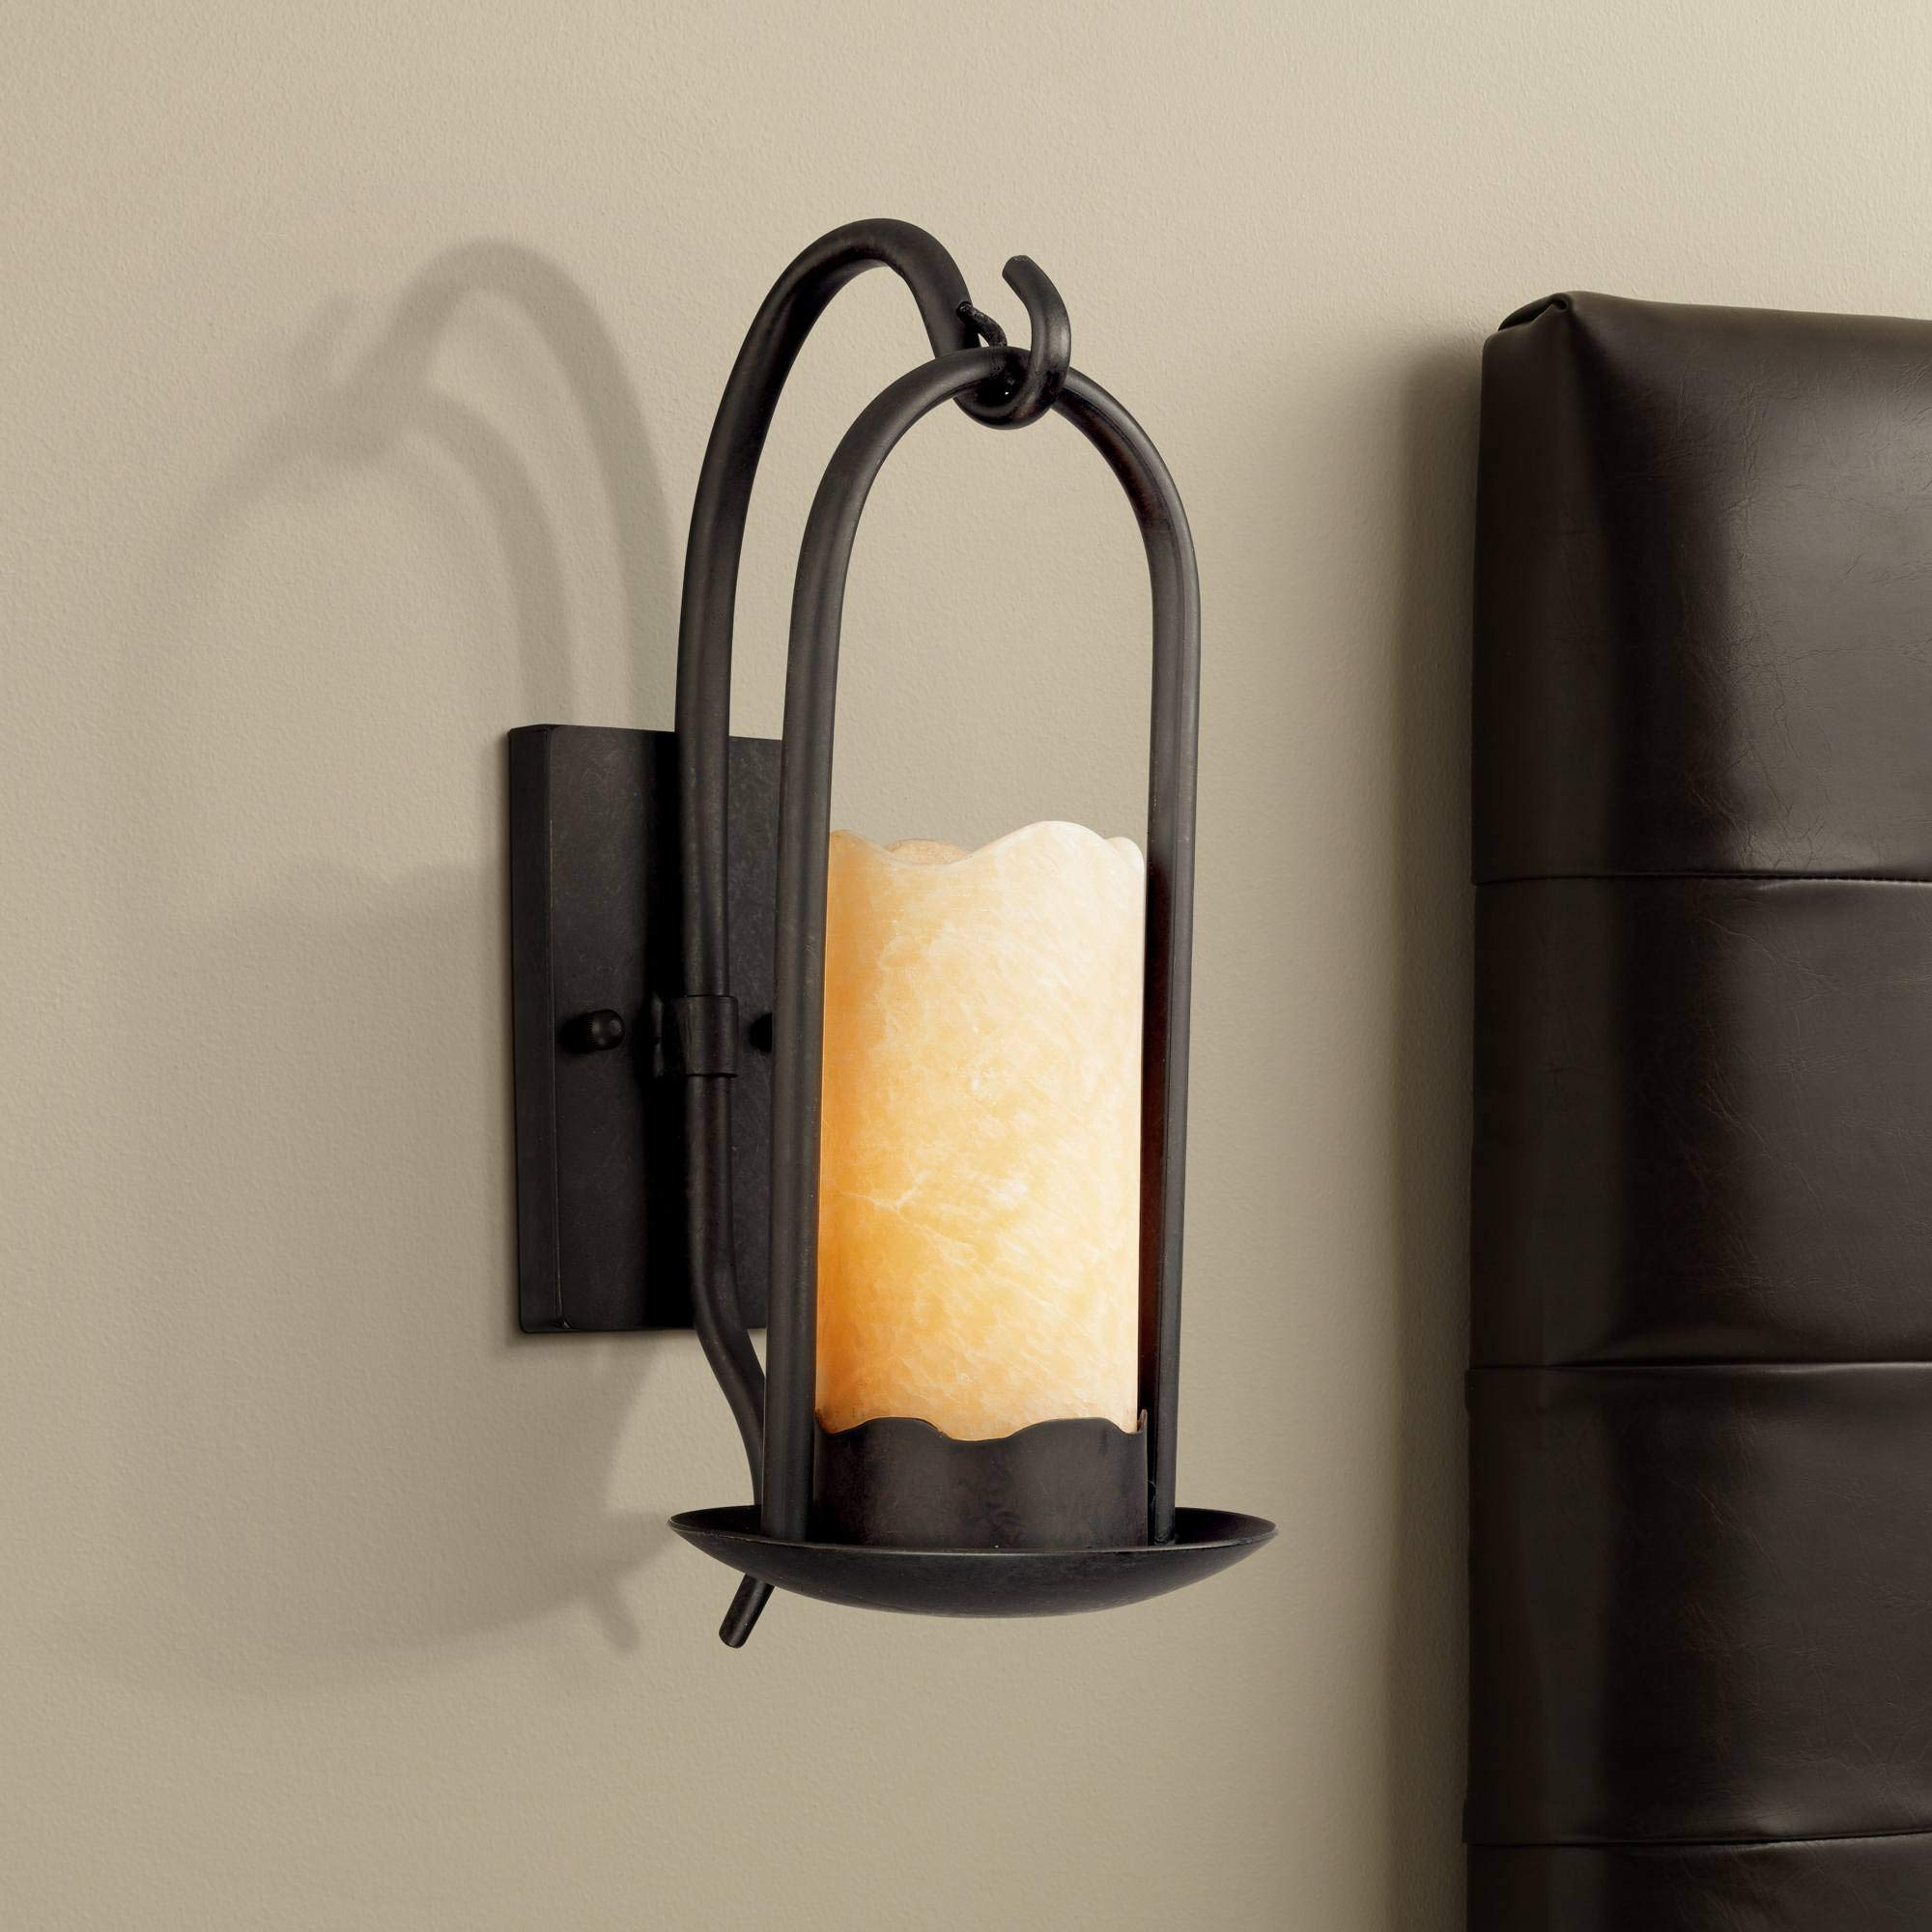 Hanging Onyx Rustic Country Cottage Wall Light Sconce Hardwired 14 1/2'' High Fixture Faux Candle for Bedroom Bathroom Hallway - Franklin Iron Works